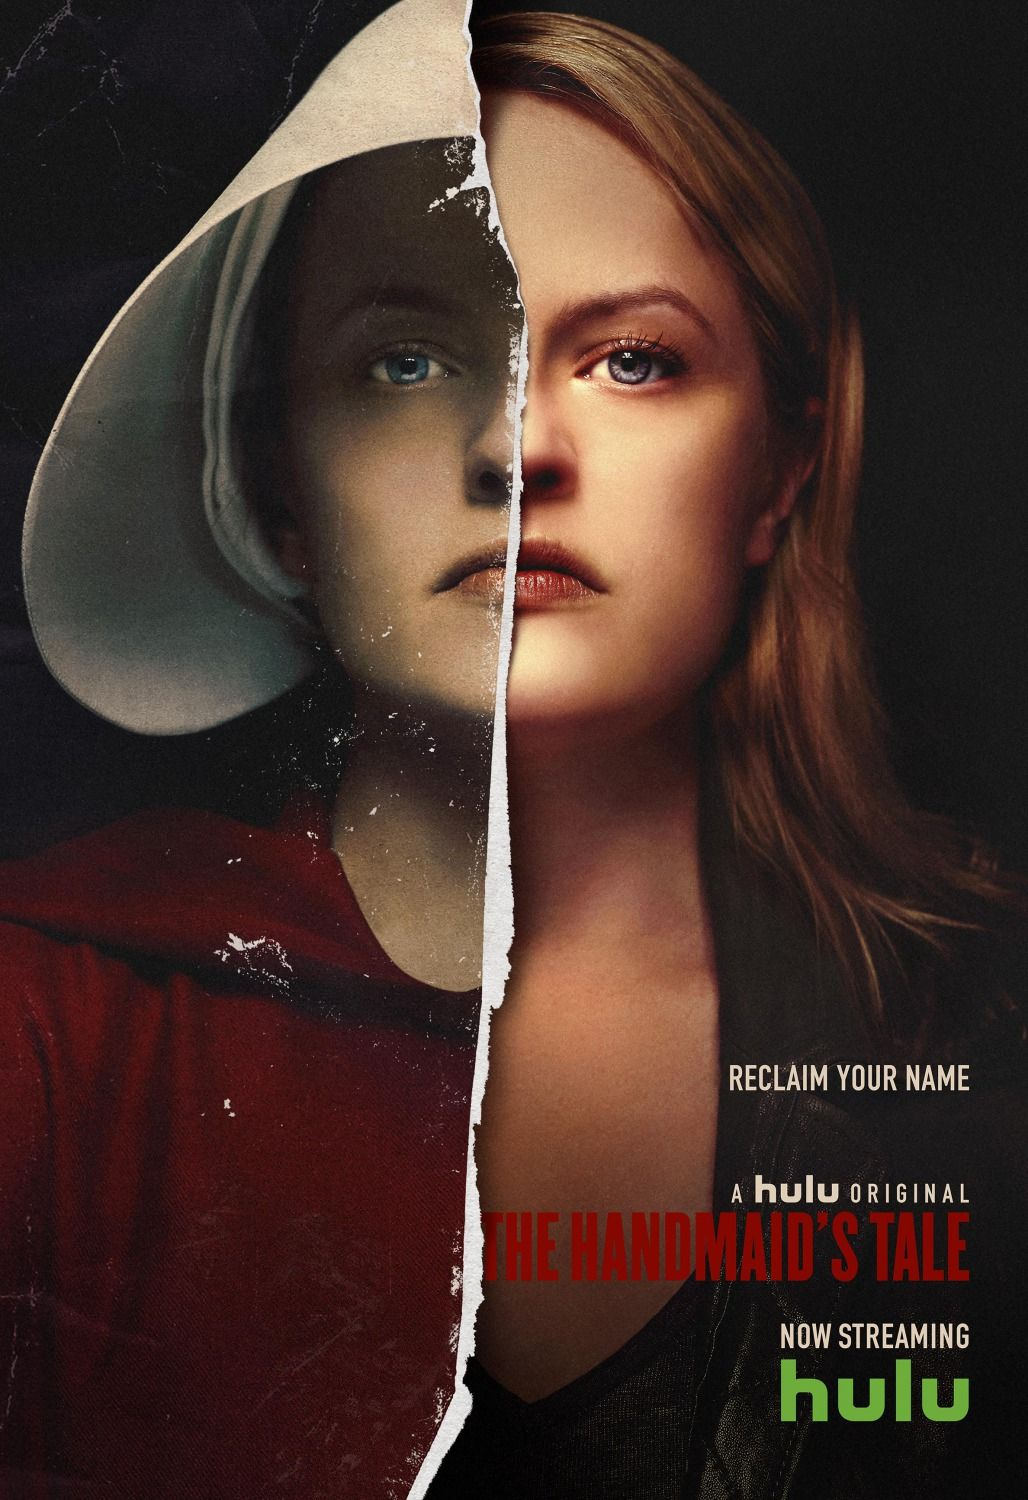 The Handmaid S Tale Season 2 Tv Series To Watch Handmaid S Tale Tv Series Movies